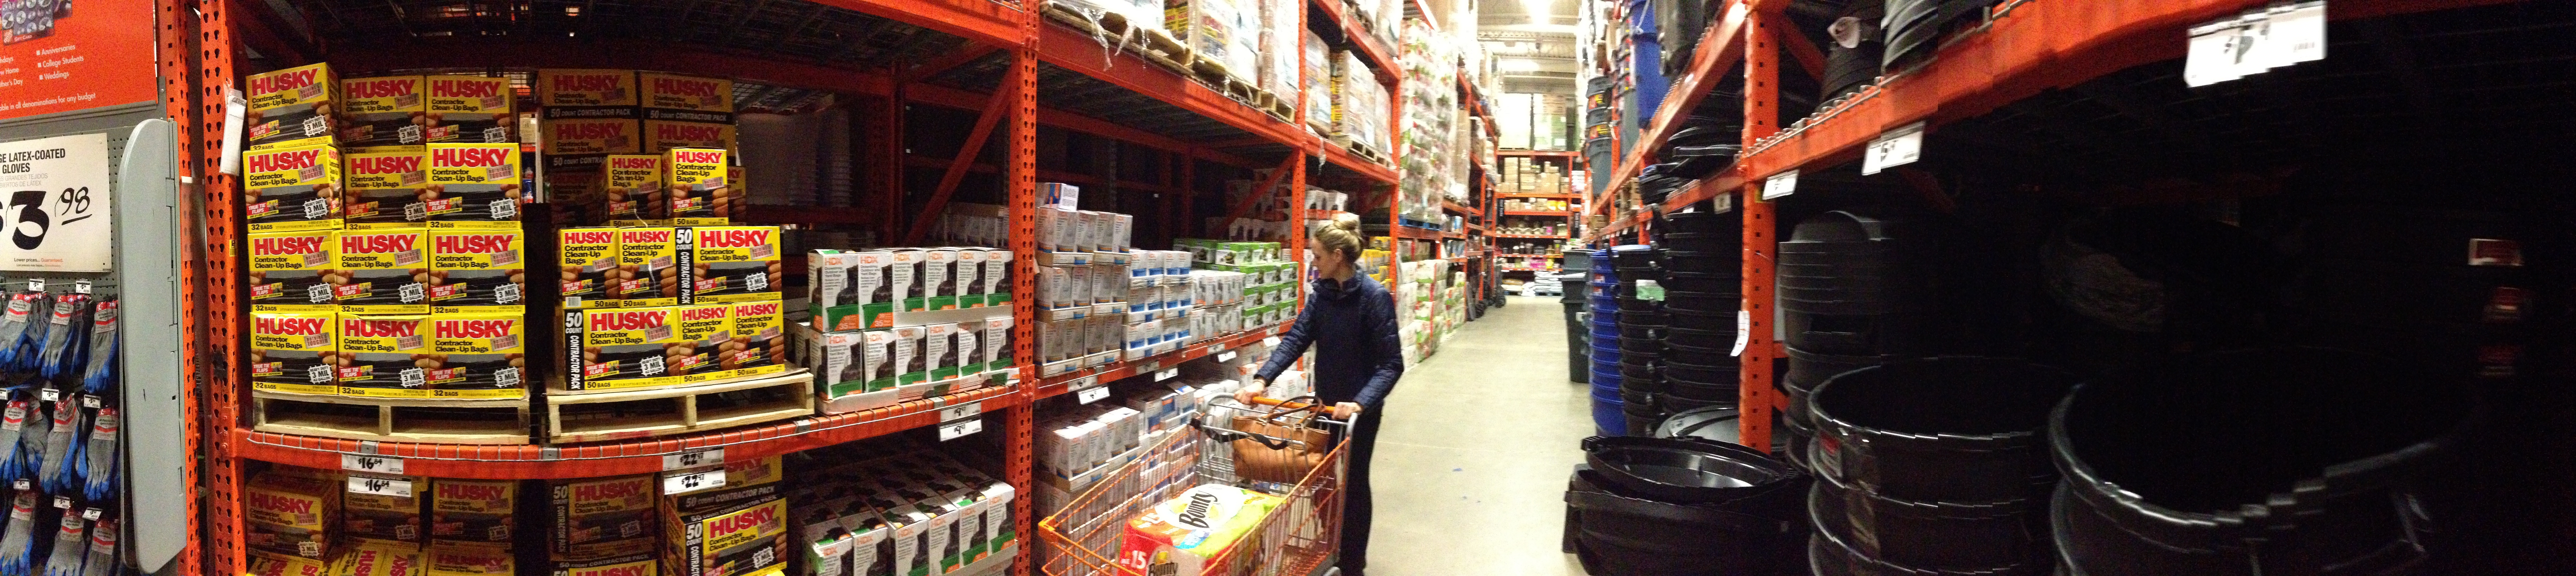 FileHome Depot Panorama Connecticut Ave Norwalk CT